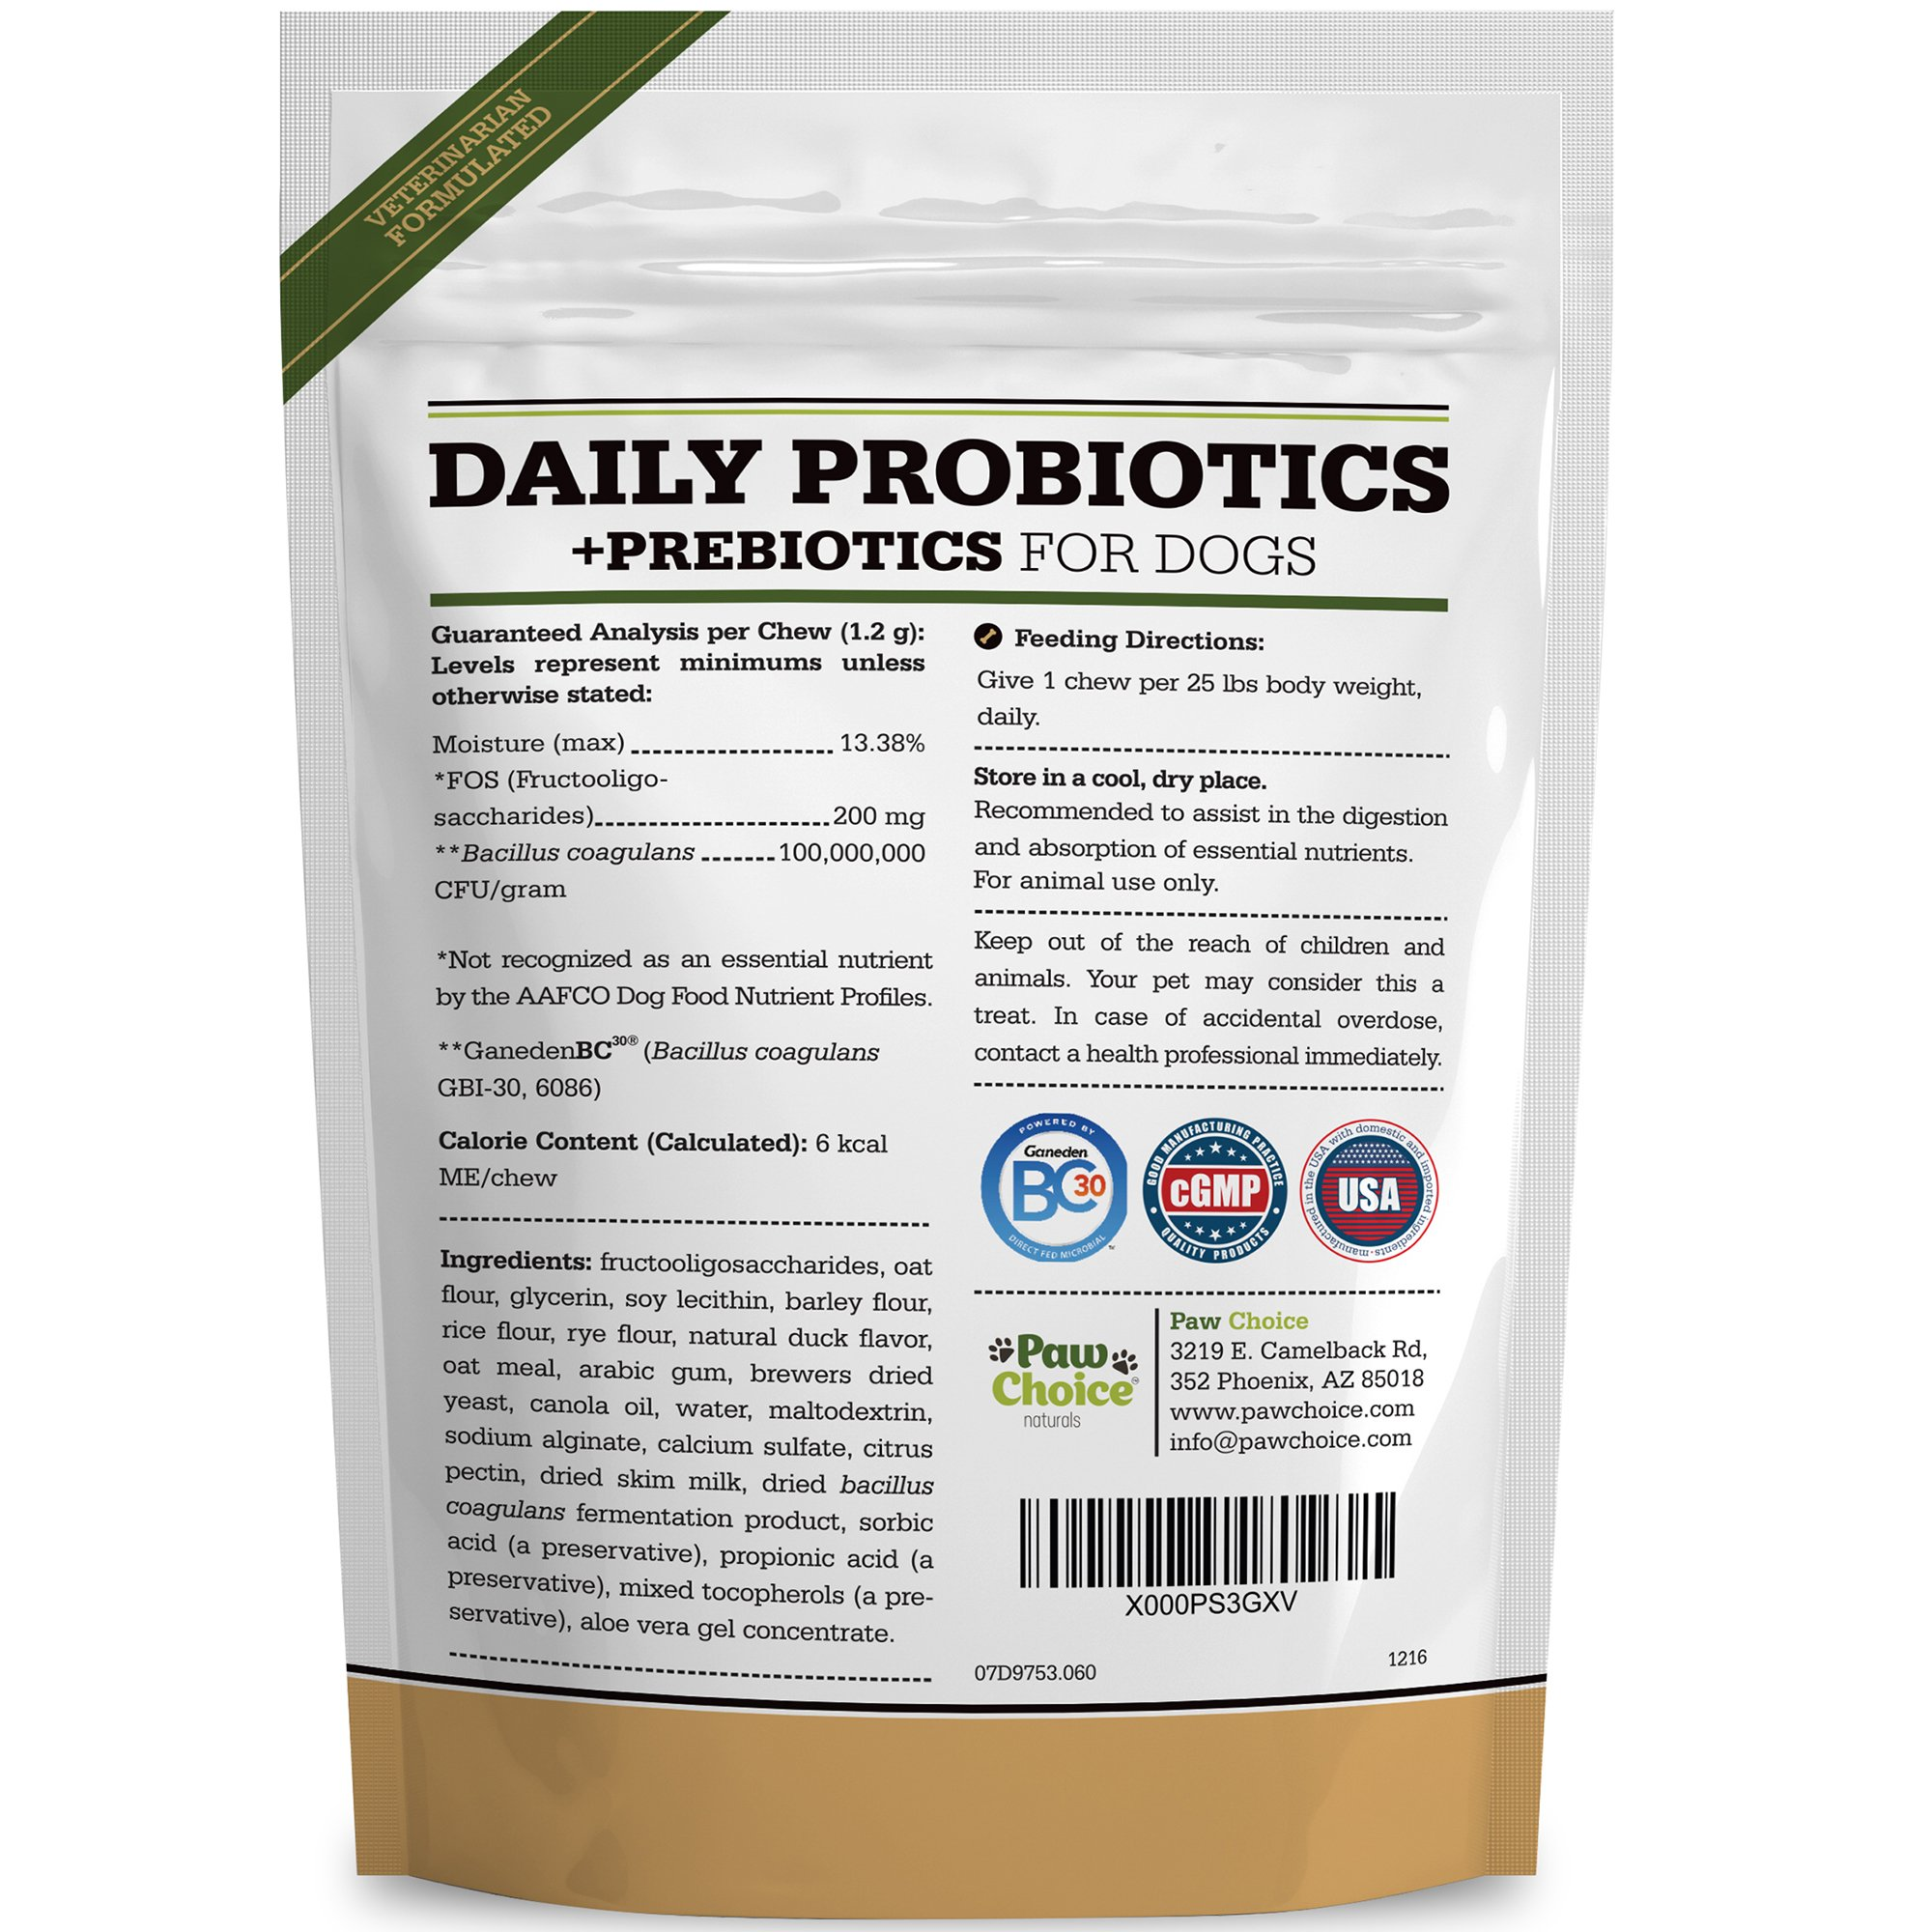 Probiotics for Dogs with Prebiotics - Daily Chews for Digestion, Regularity, Diarrhea Relief, Plus Supports Immune System and Health - Natural Supplement and Treat Made in USA by Paw Choice (Image #6)